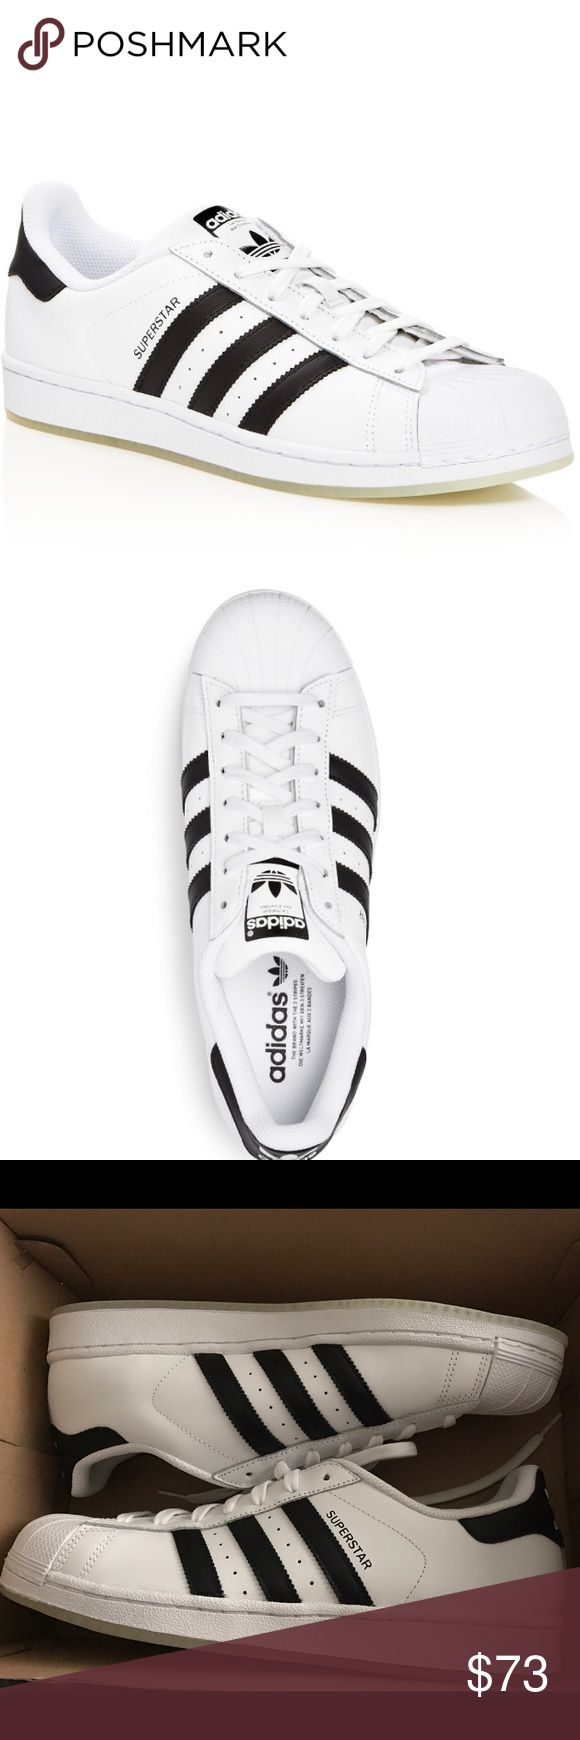 ADIDAS Superstar Men's Fashion Sneaker White/Black Brand new Adidas Men's Superstars! Always trendy! Available sizes: US 10 / EUR 44 & US 9.5 / EUR 43 1/3 . Please let me know which size you want.  The classic shell toe Superstars from Adidas are a true laid-back classic that instantly elevate any off-duty look.  Leather/synthetic/textile/rubber Fits true to size Leather & synthetic upper with perforated detailing, textile lining Rubber sole & cap toe Logo at tongue, sides & heel. Brand new…